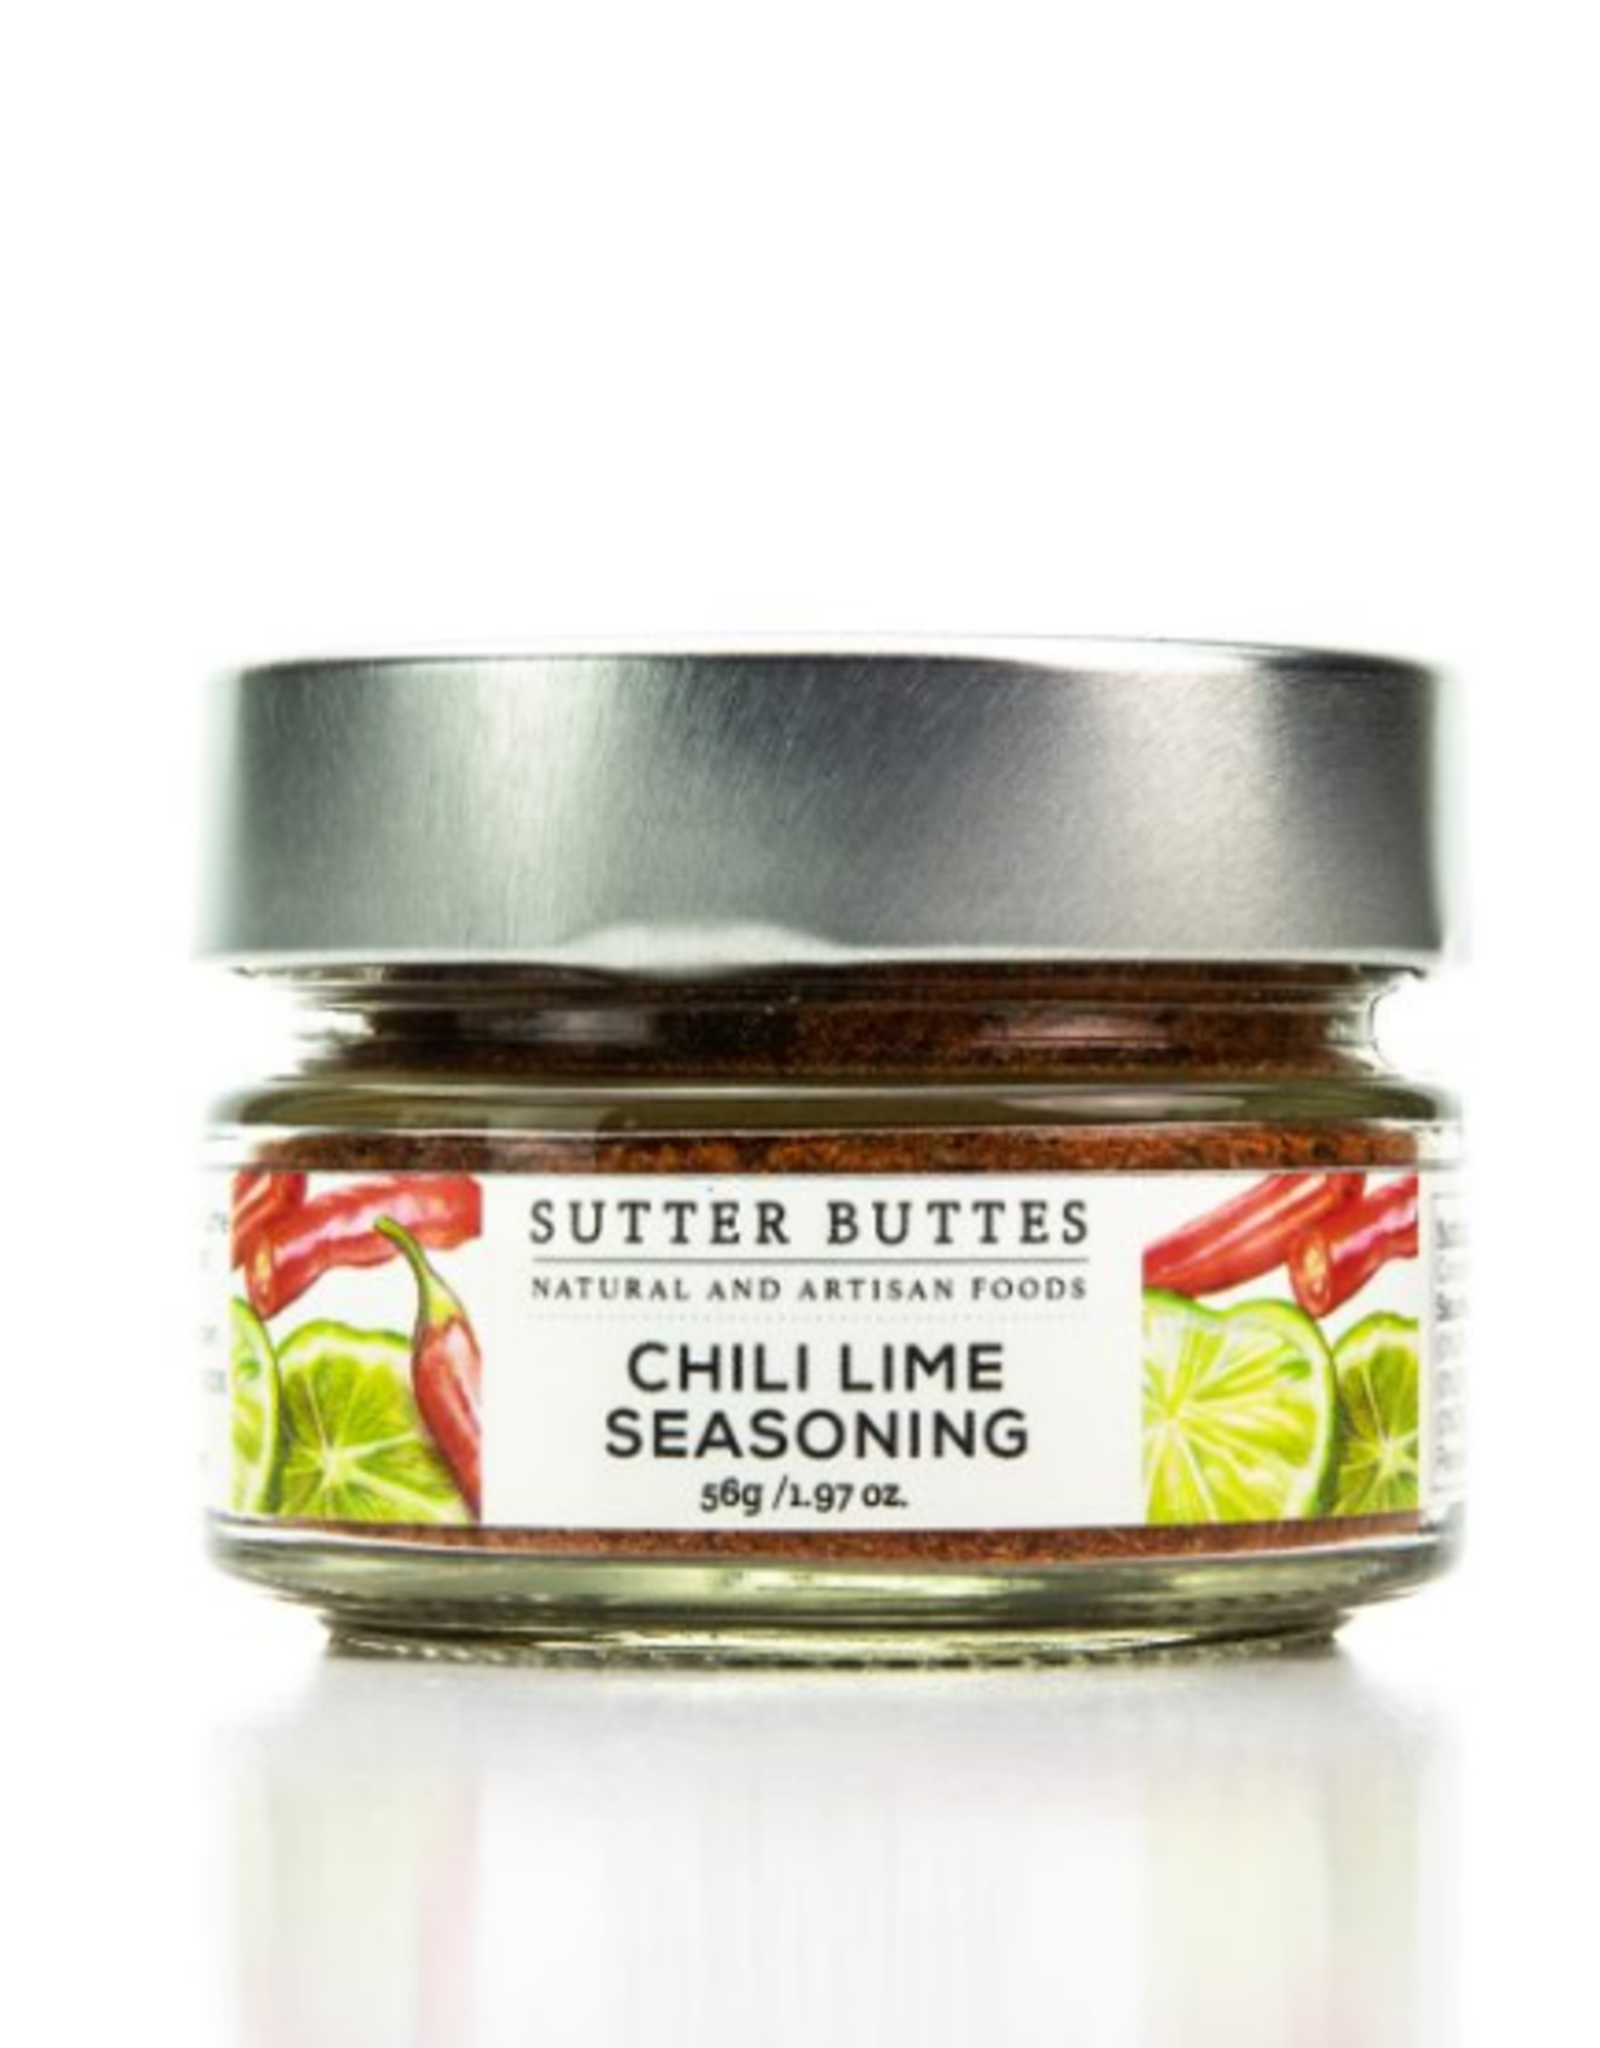 Sutter Buttes Chili Lime Seasoning, 2 oz